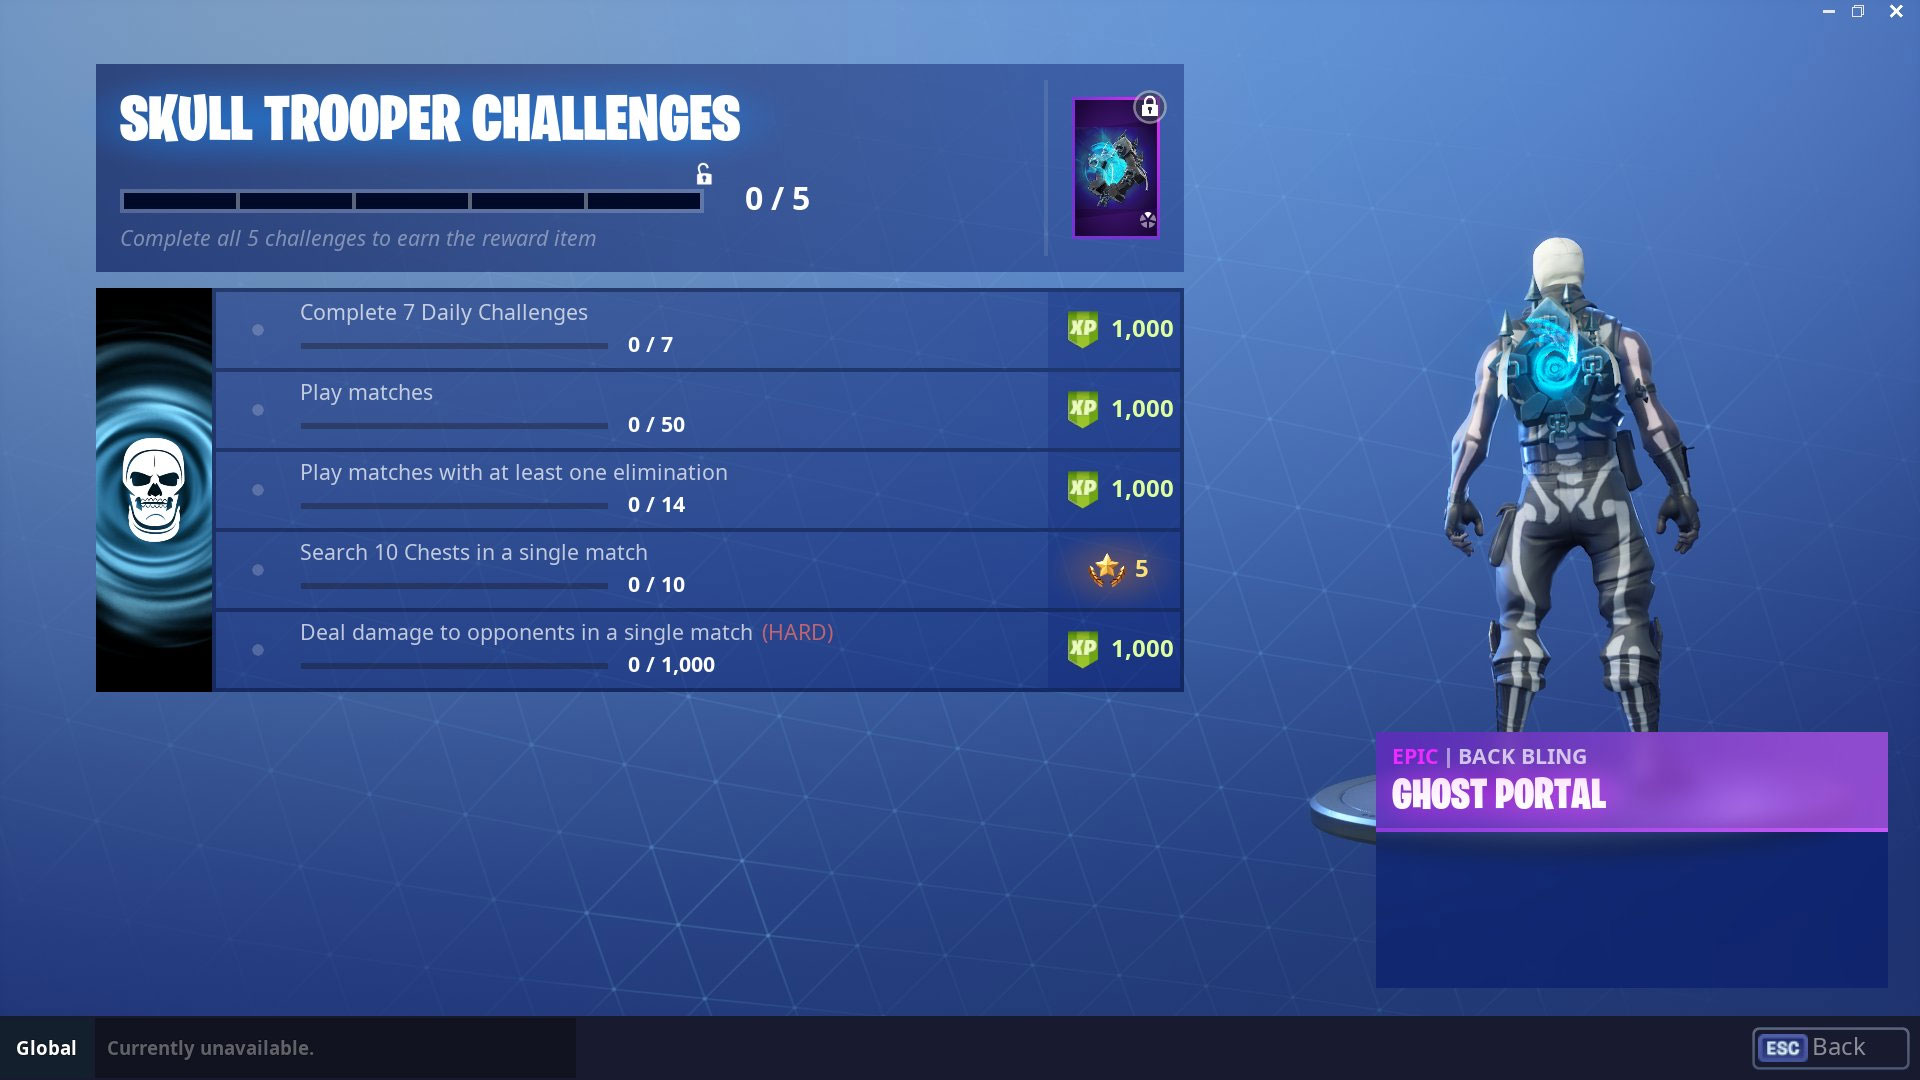 ghost portal back bling challenges